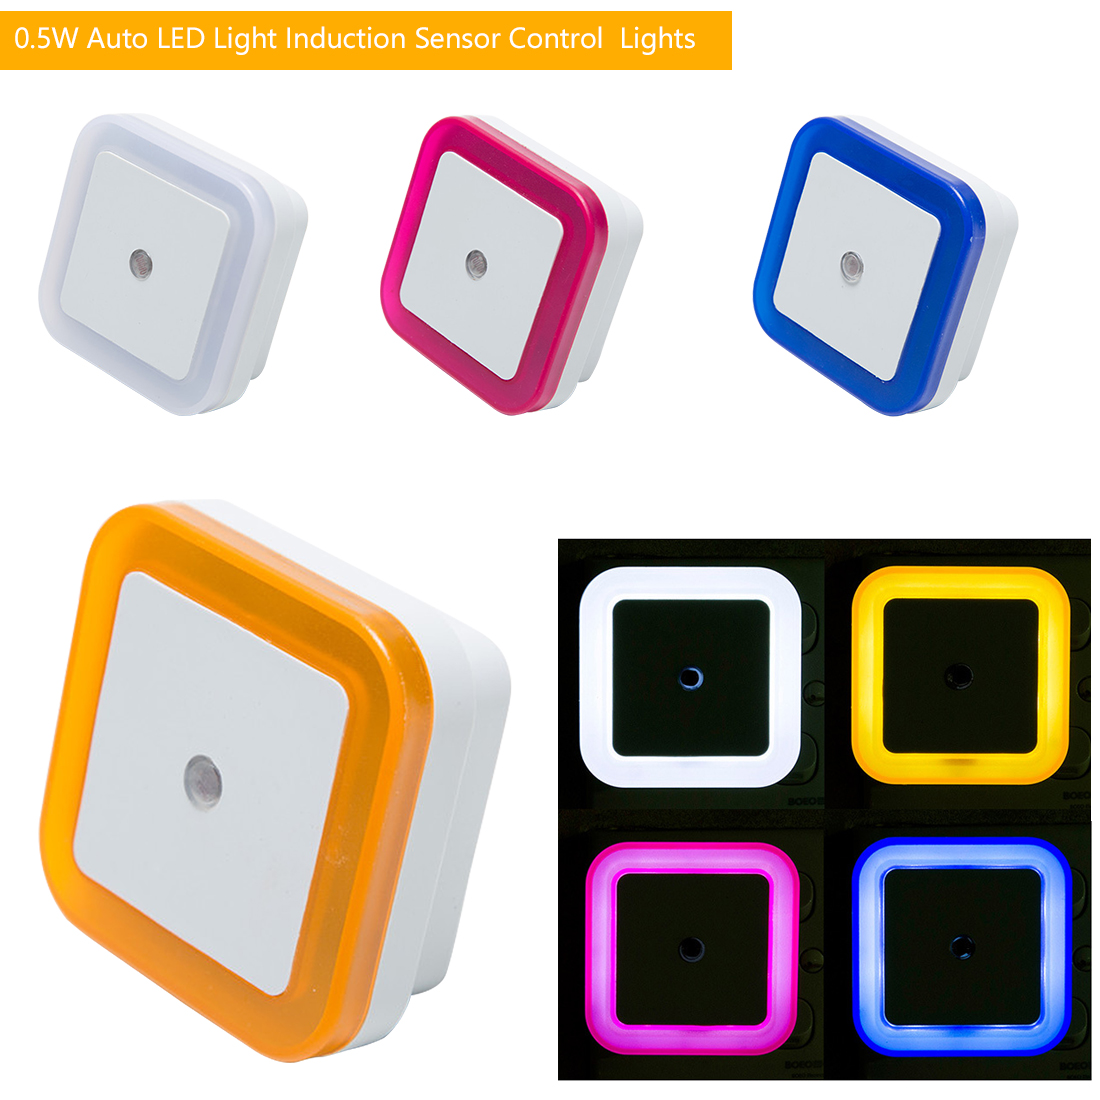 4 Colors LED Night Light Mini Light Sensor Control EU Plug Novelty Square Bedroom Lamp For Baby Gift Romantic Colorful Lights